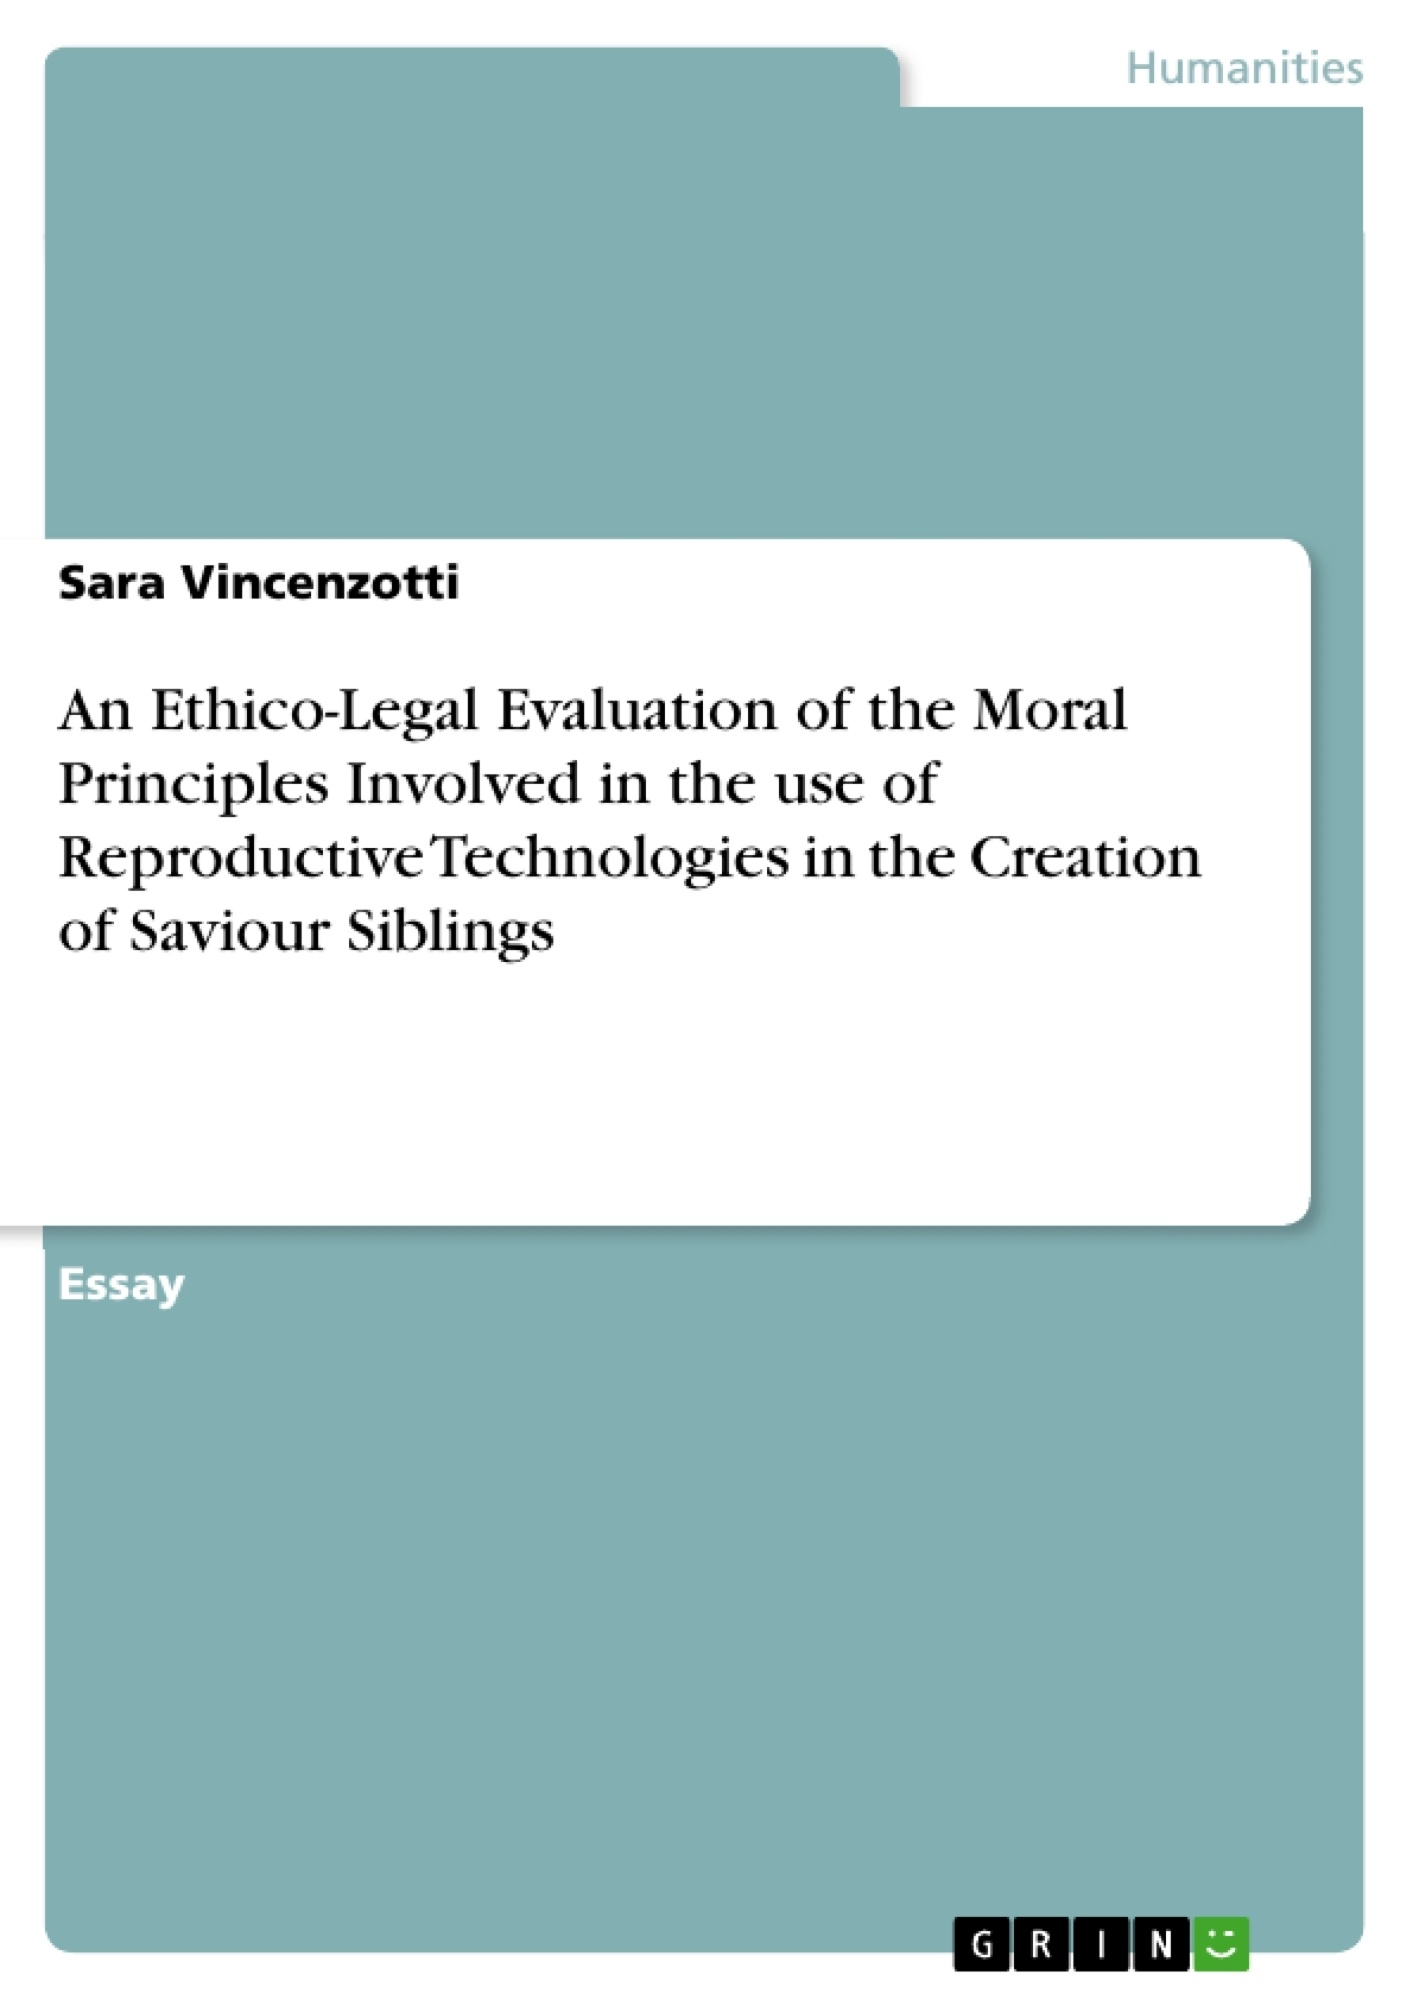 Title: An Ethico-Legal Evaluation of the Moral Principles Involved in the use of Reproductive Technologies in the Creation of Saviour Siblings